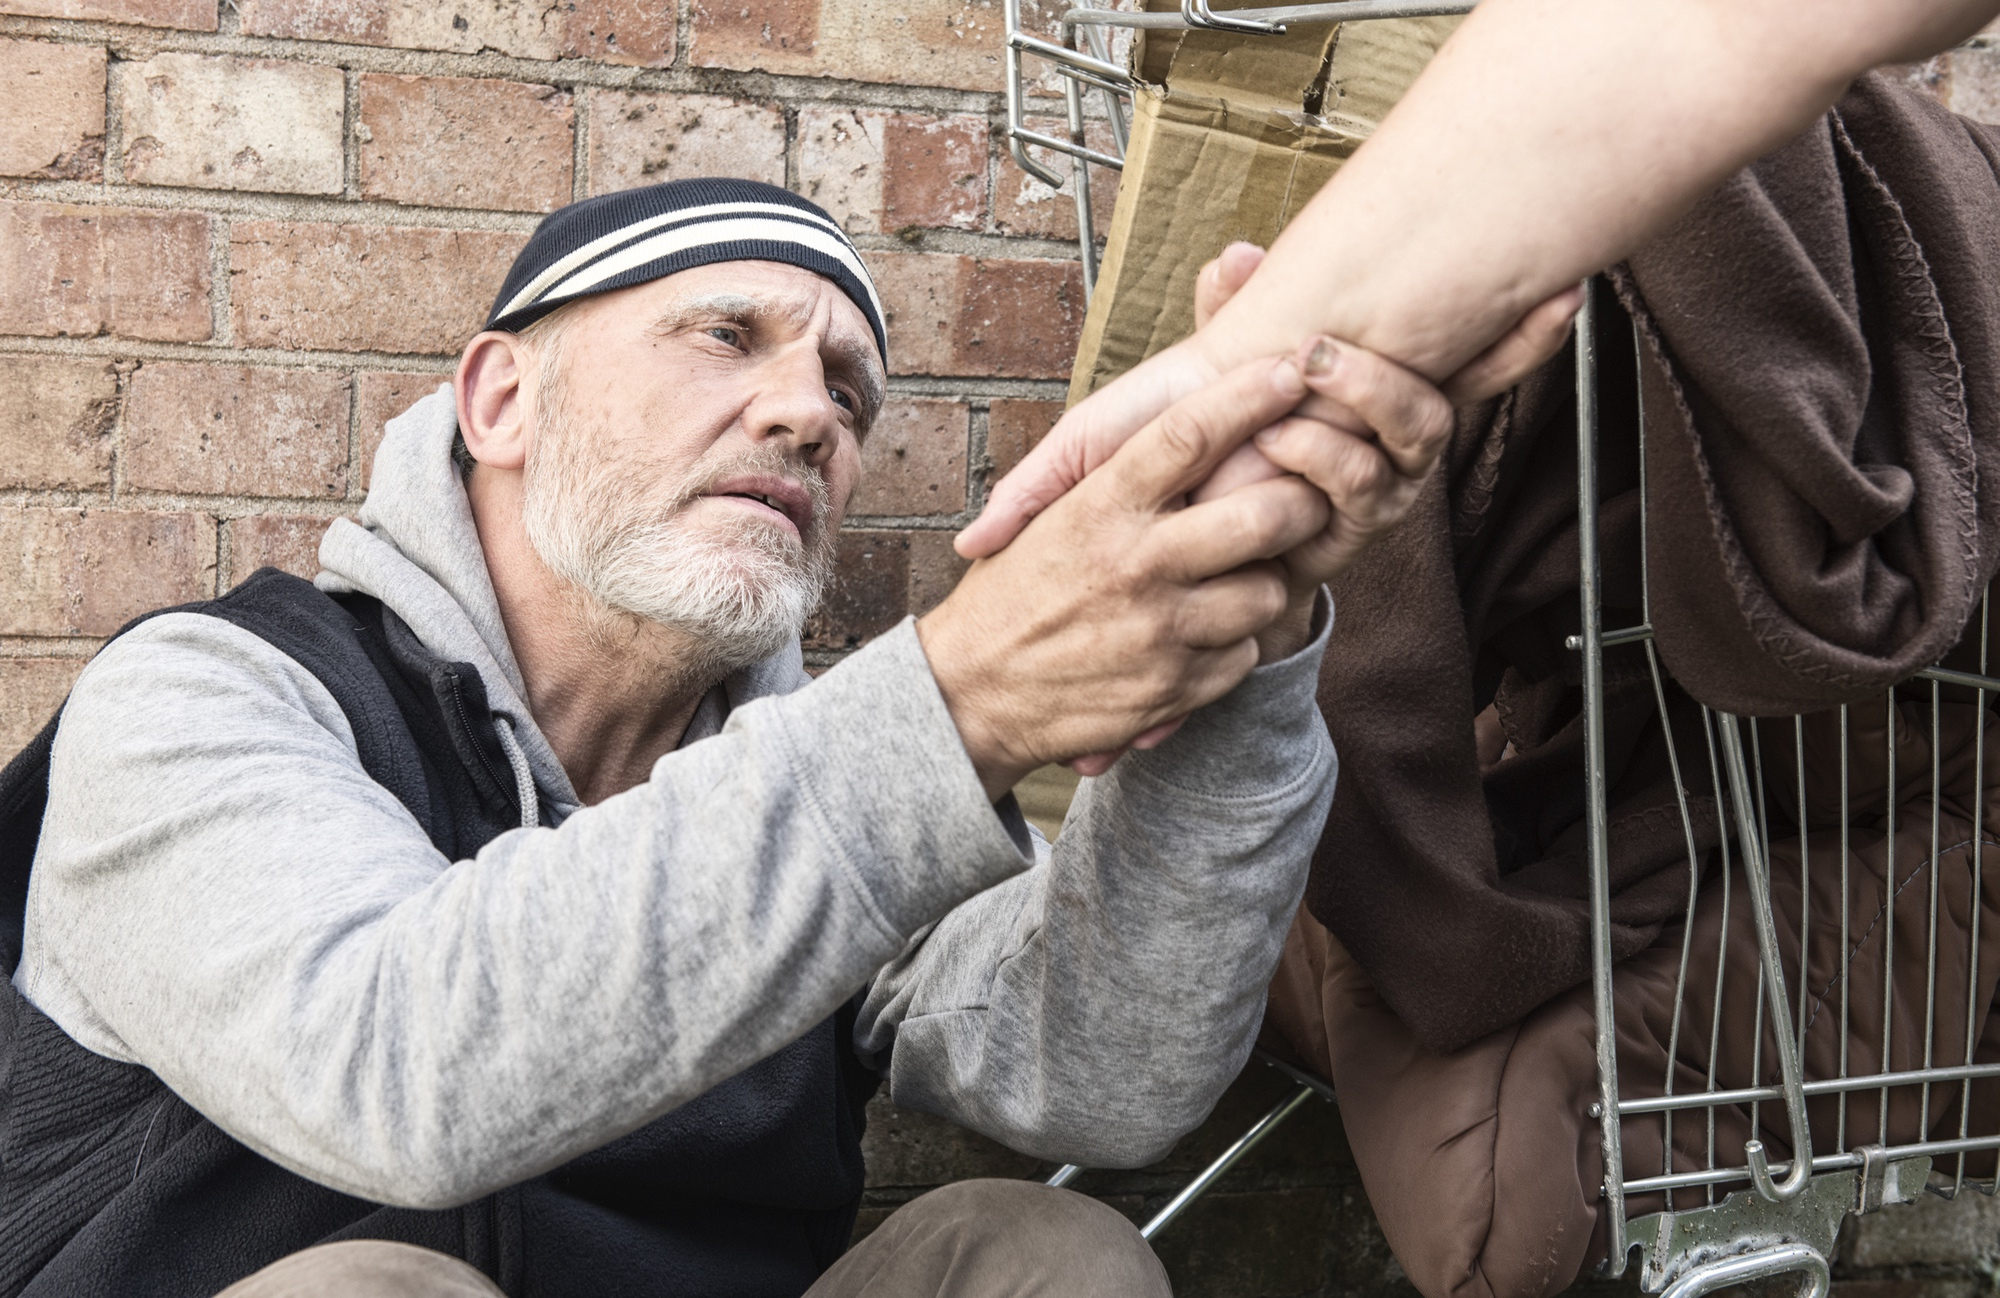 Hand outstretched to help homeless man. Stock photo. Posed by models.